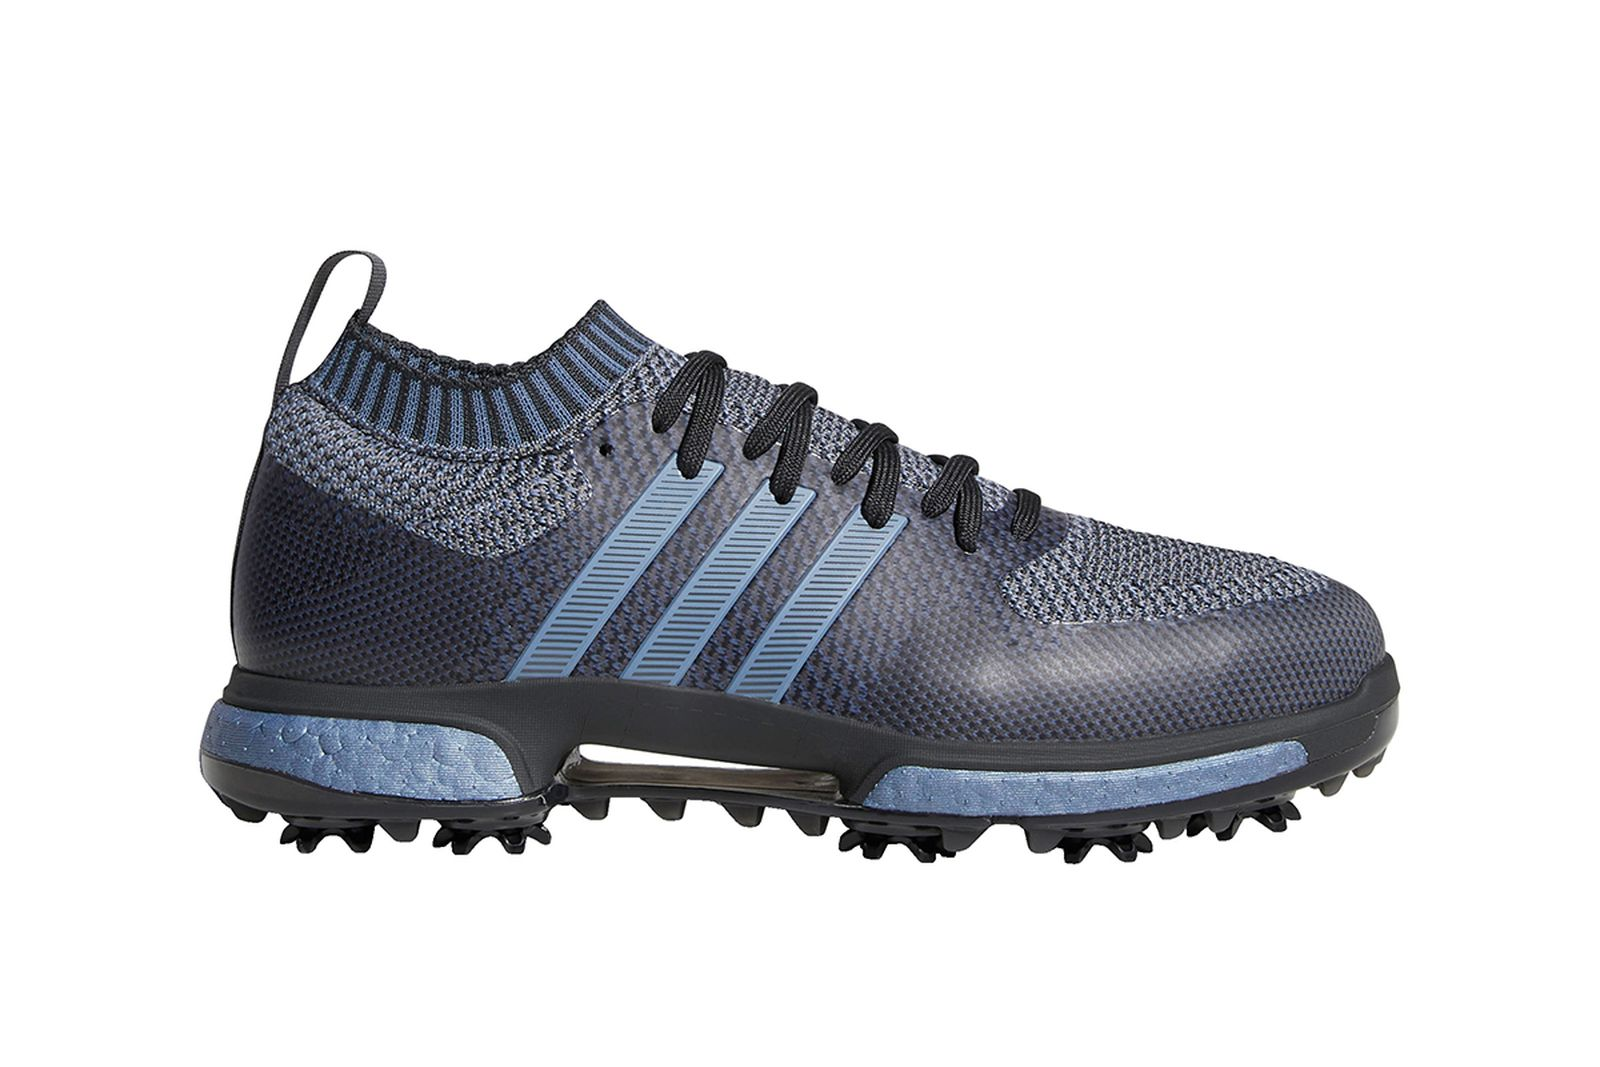 adidas golf blue boost sneakers release date price adidas Crossknit 2.0 adidas TOUR360 Knit